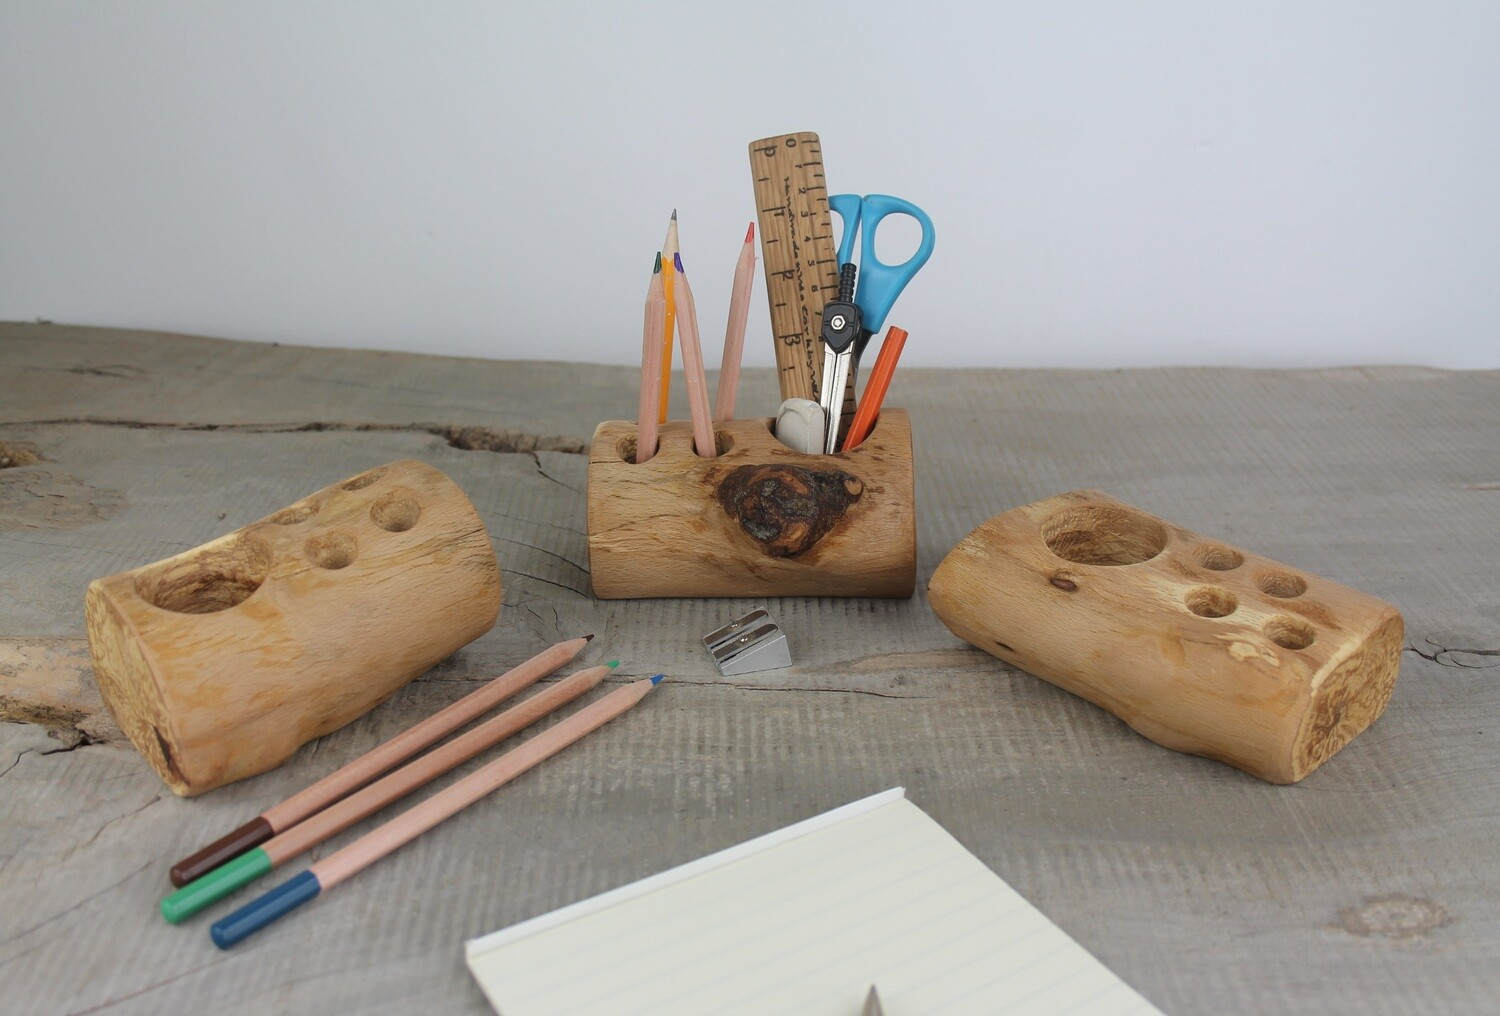 Handmade Wooden Desk Caddy, Pen and Pencil Holder, Plastic-free